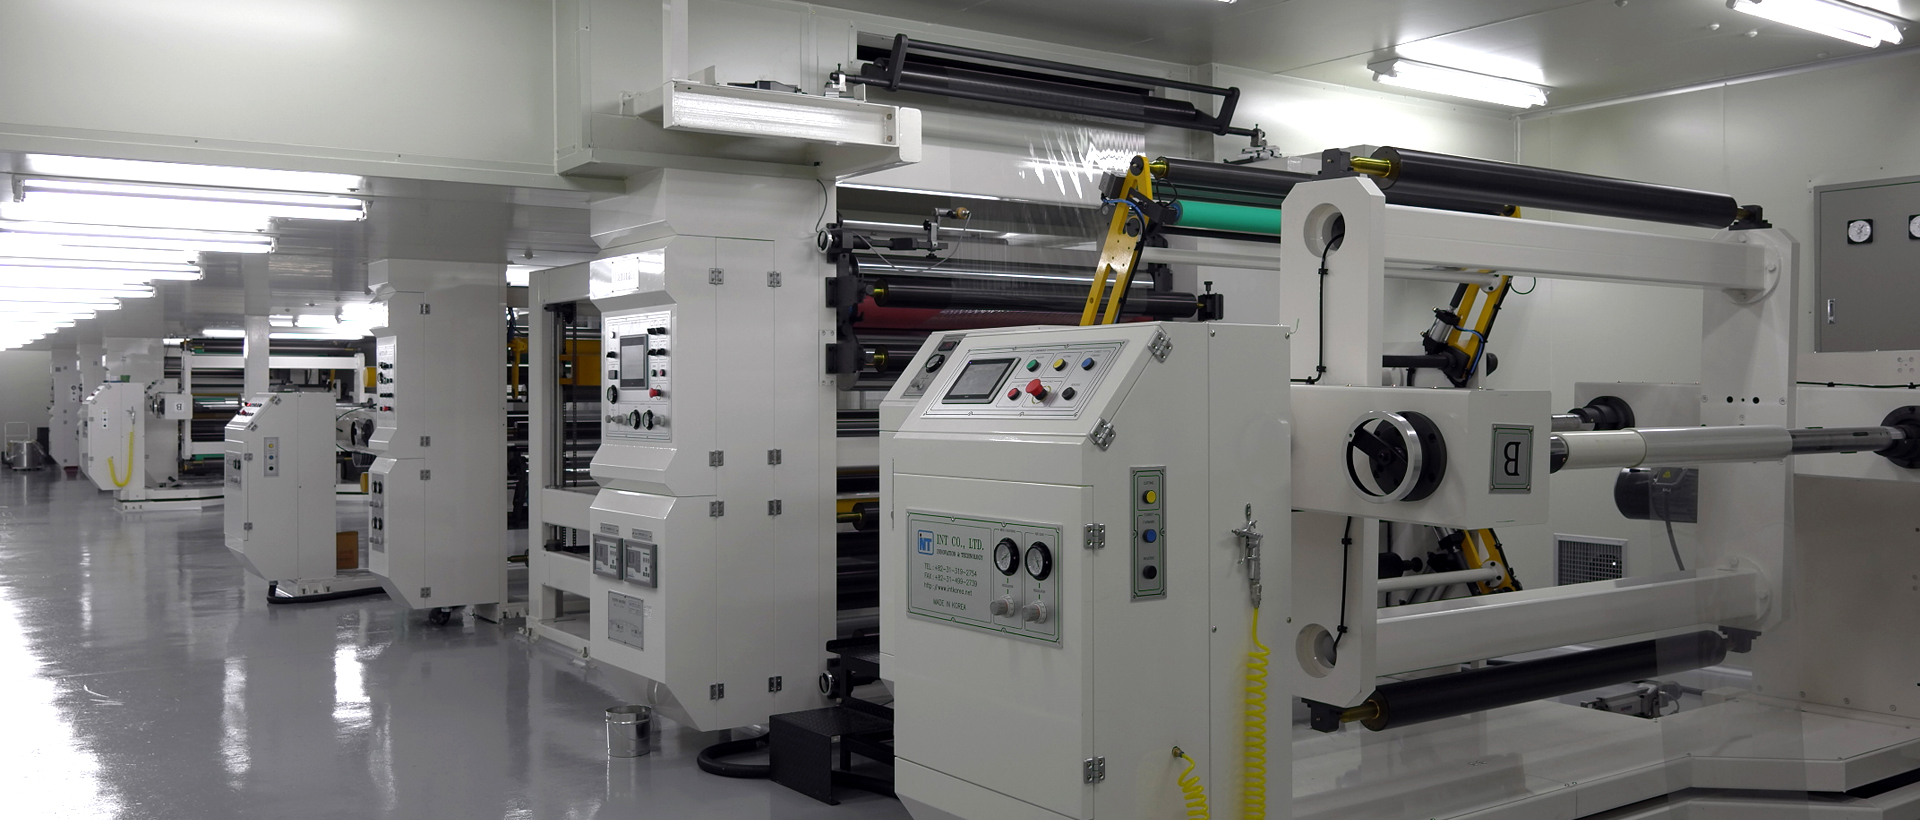 Coating and Laminating Machine$$<p>MACHINE SPEED: MAX 150m/min</p><p>WEB WIDTH: 1,600mm</p><p>GUIDE ROLL WIDTH: 1,700mm</p><p>COATING TYPE: COMMA AND MICRO COATING</p><p><br></p>